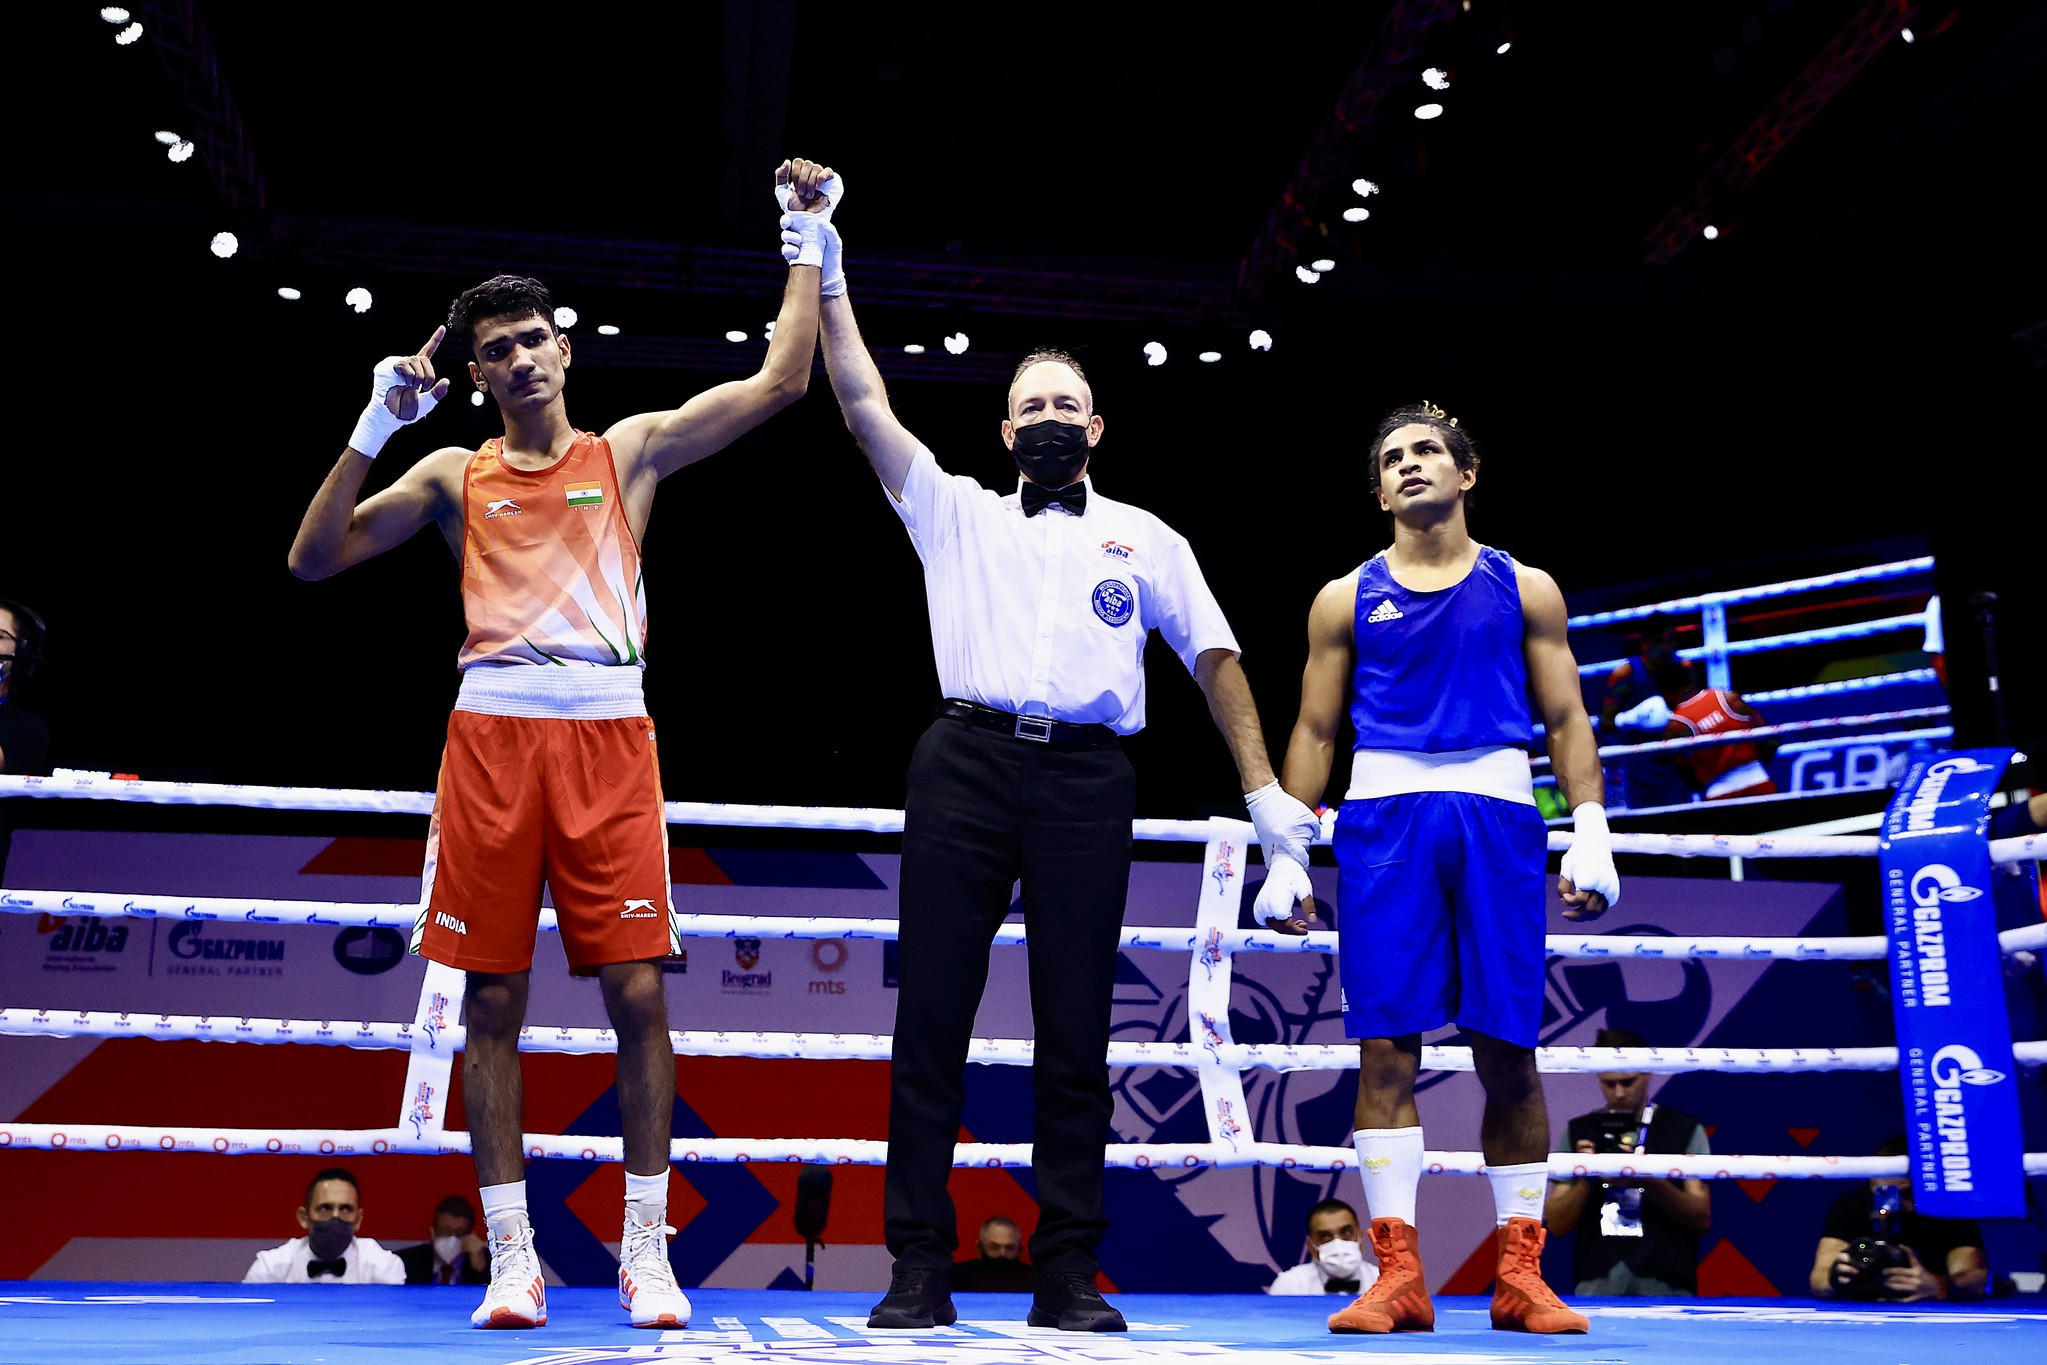 AIBA Men's World Boxing Championships start in Belgrade with preliminary bouts